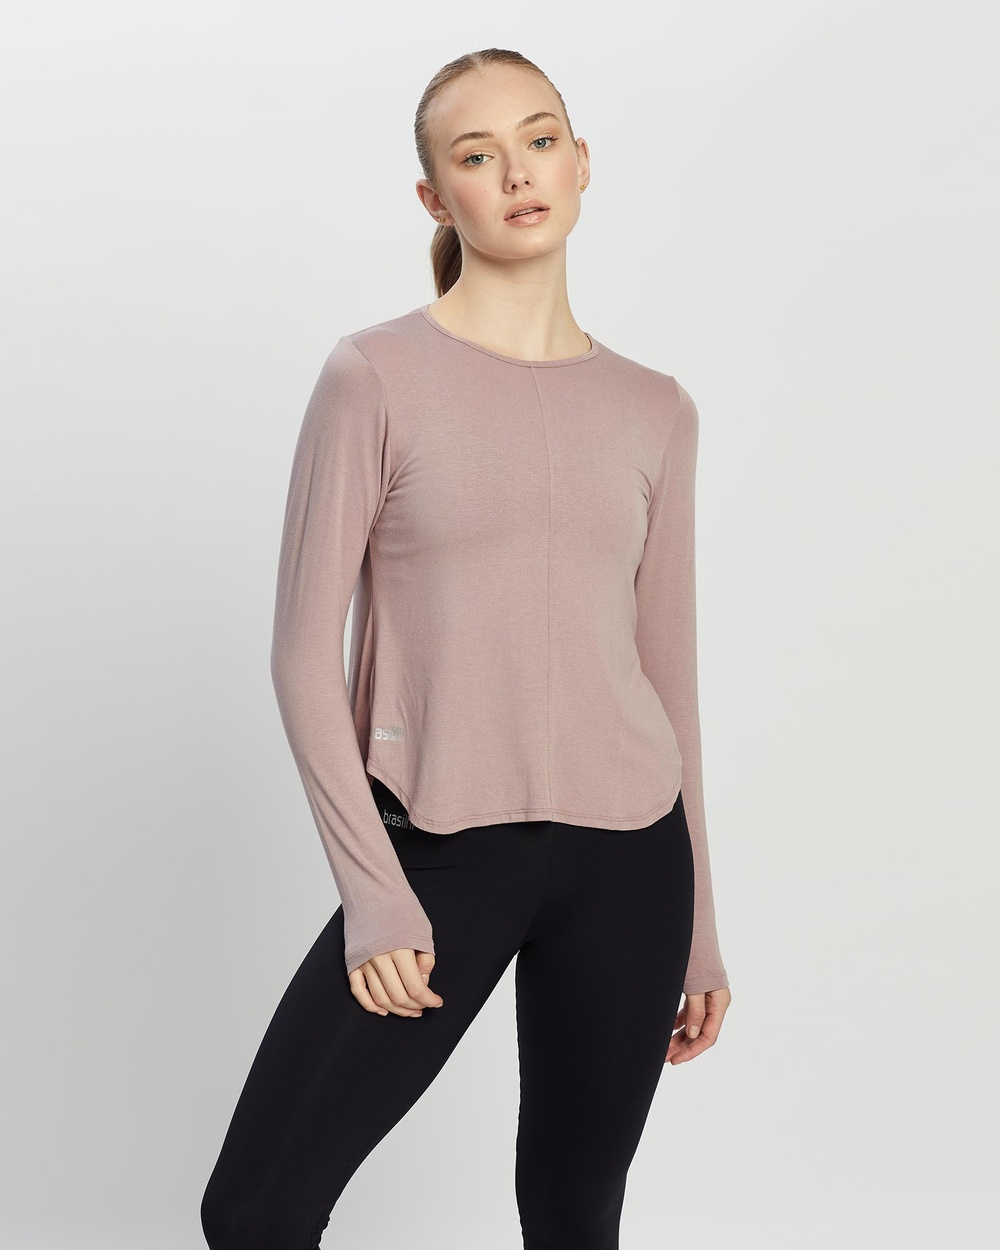 Brasilfit - Dingle Long Sleeve Top - Long Sleeve T-Shirts (Mauve) Dingle Long Sleeve Top